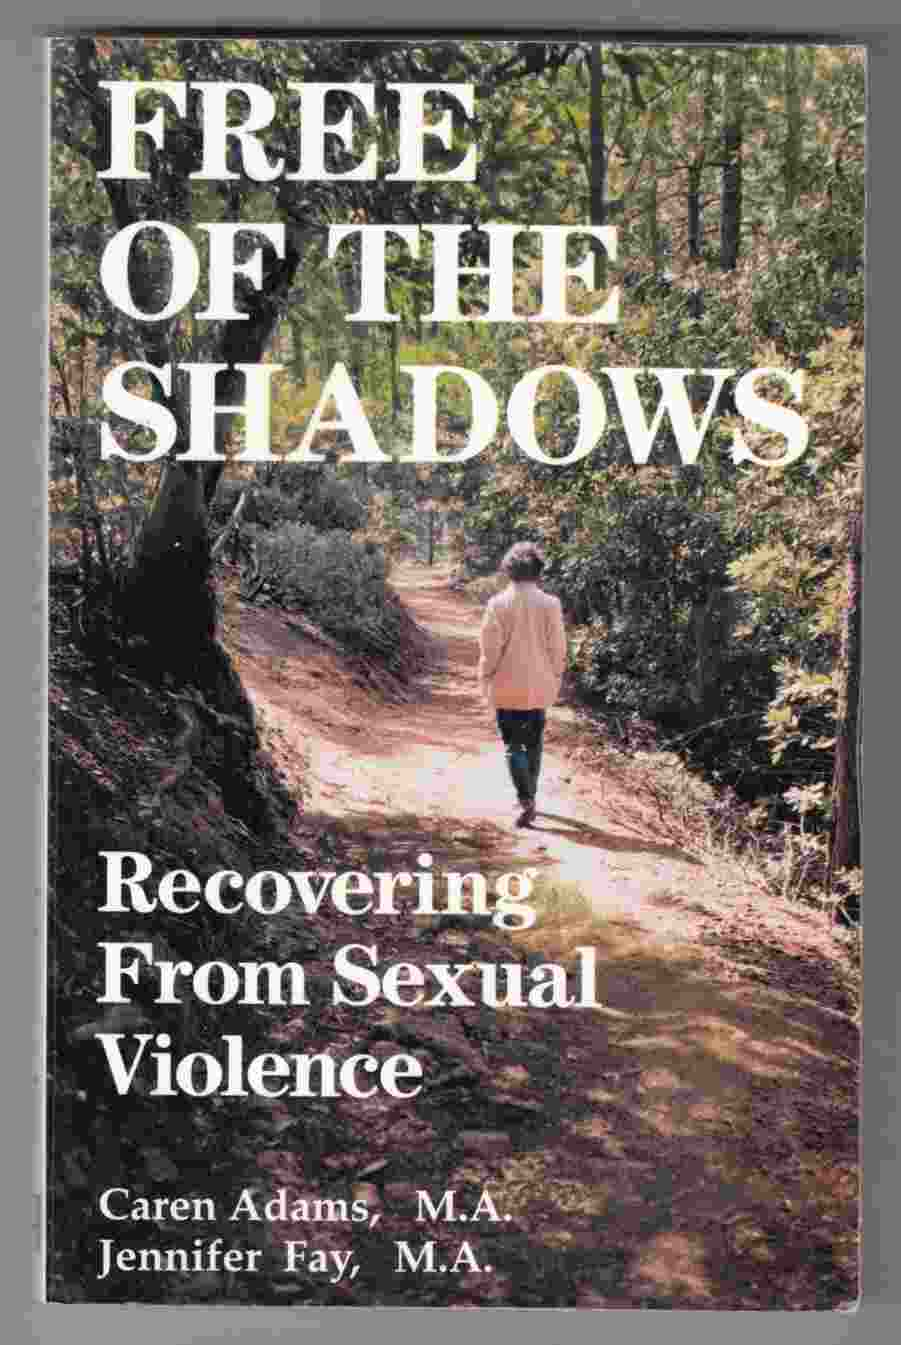 Image for Free of the Shadows Recovering from Sexual Violence